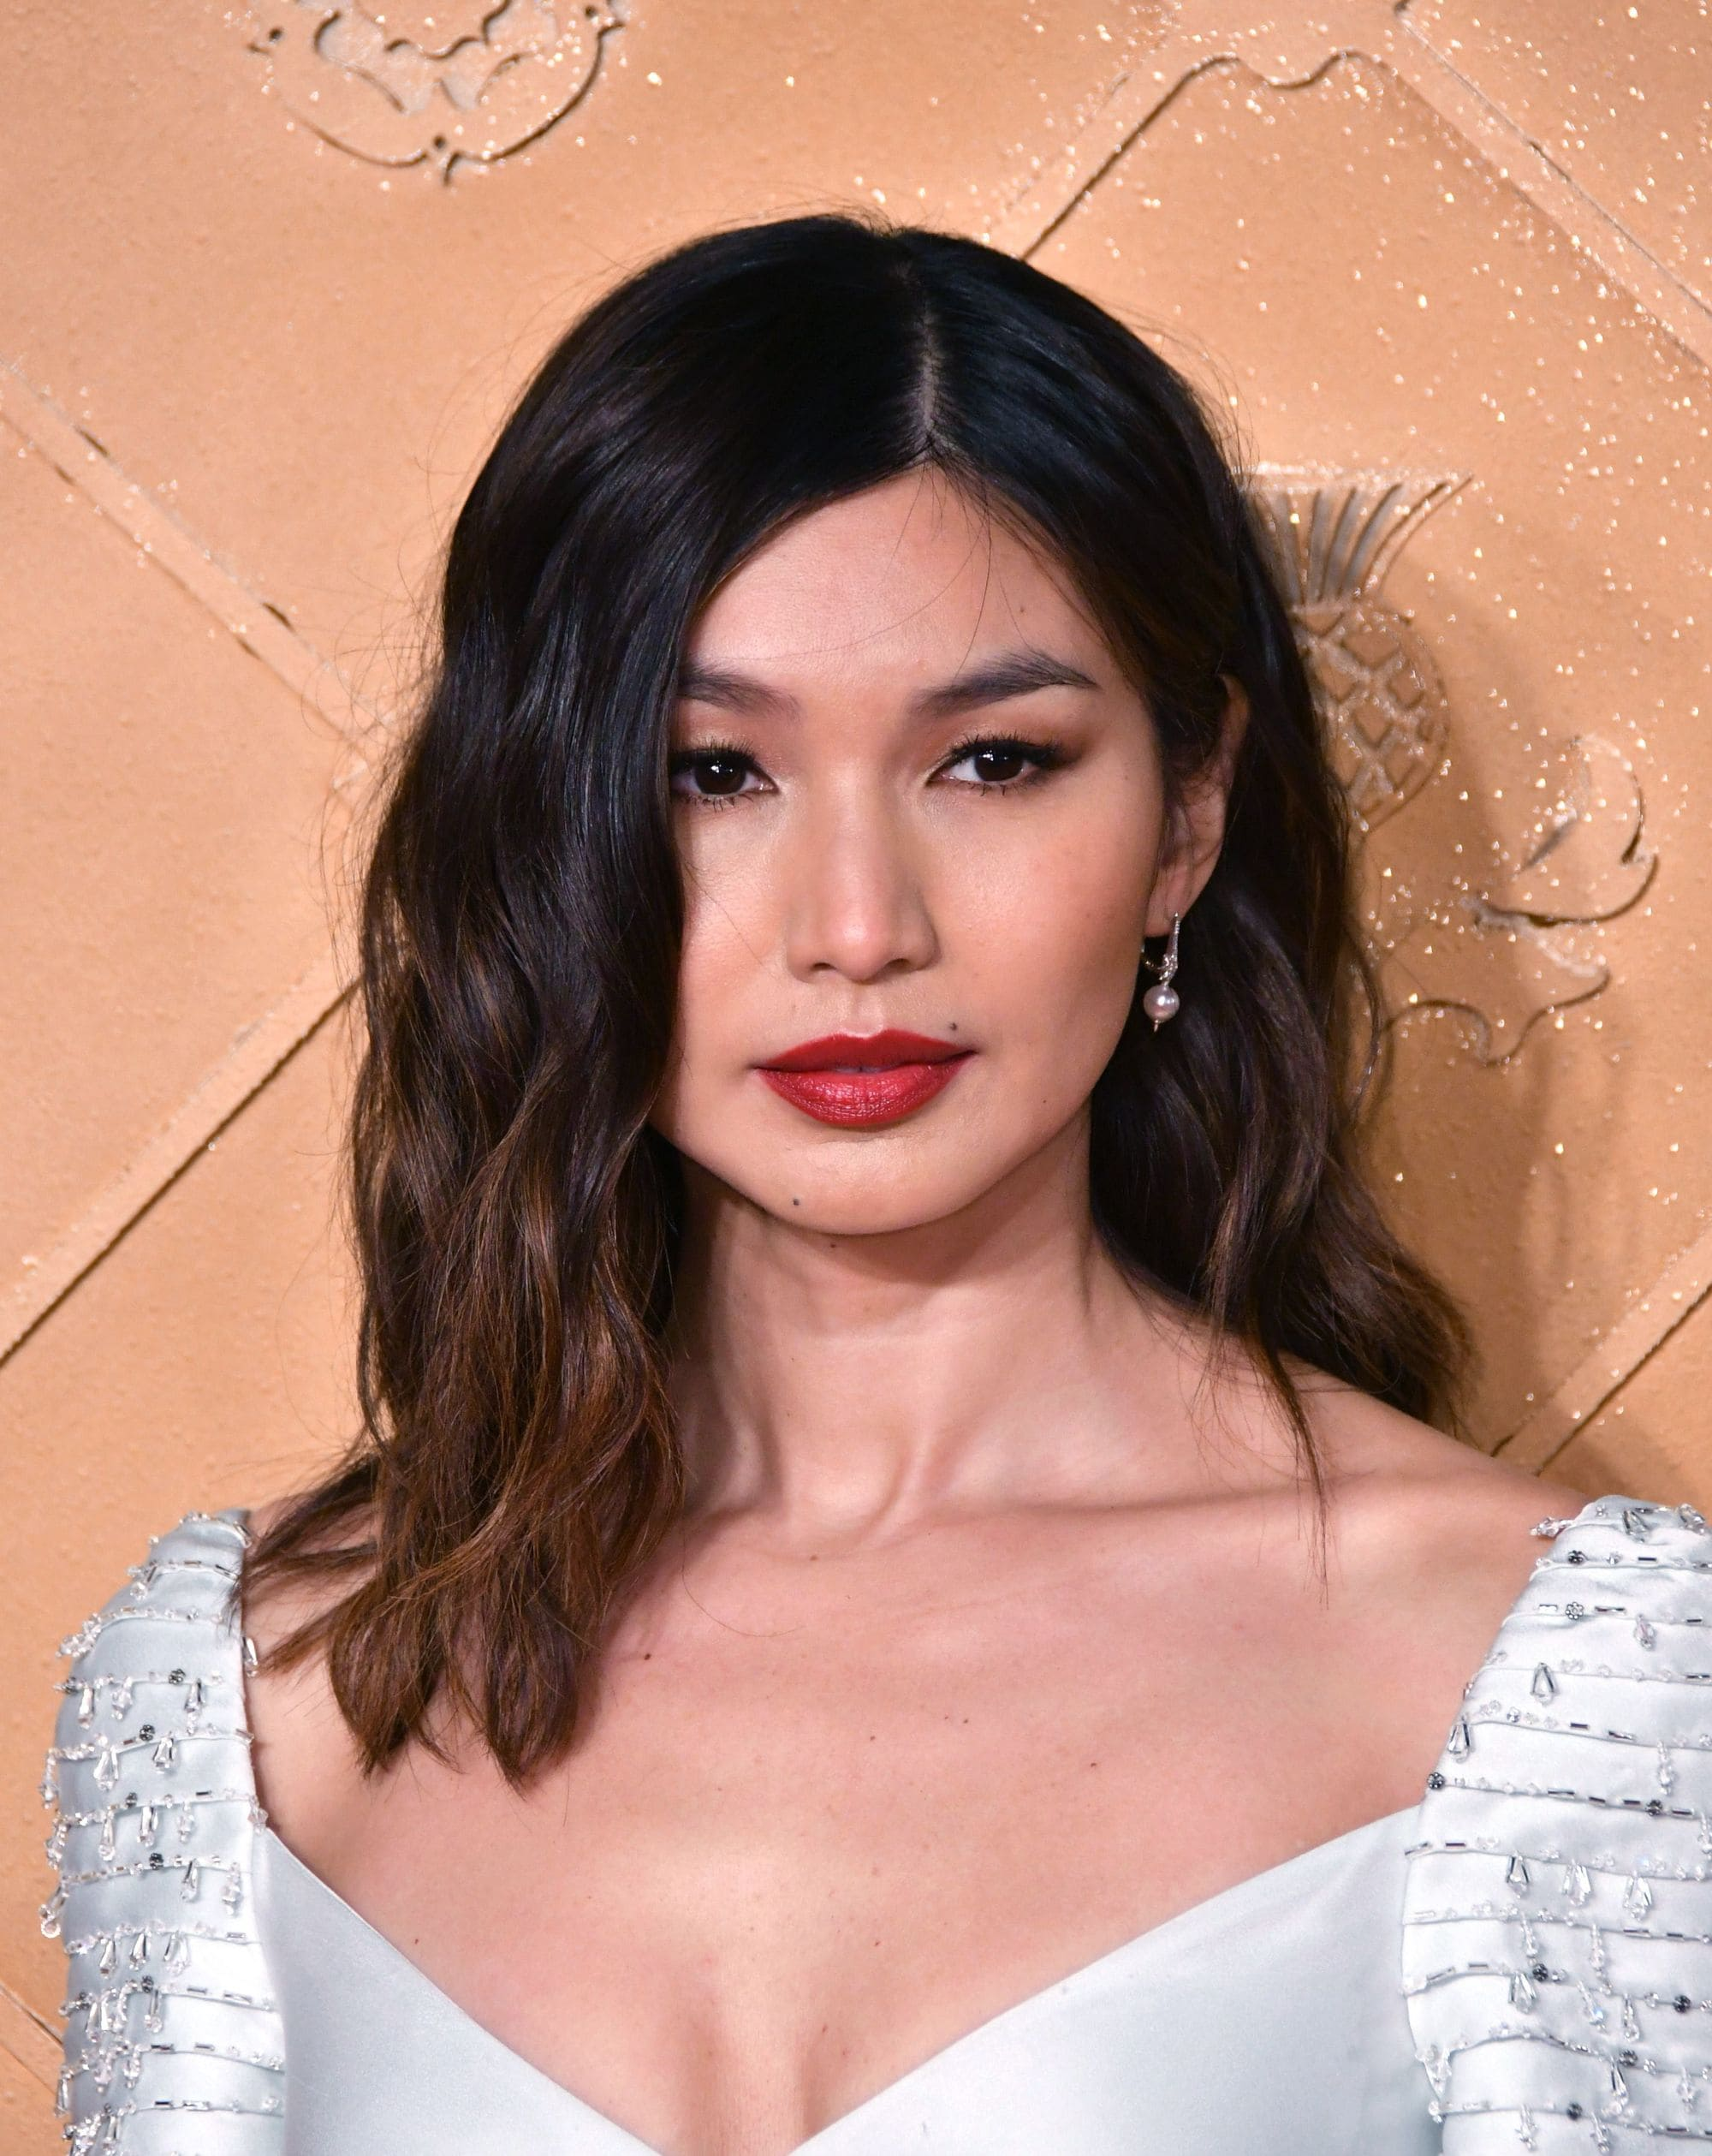 Shoulder length layered hair: Gemma Chan with shoulder length wavy layered dark hair